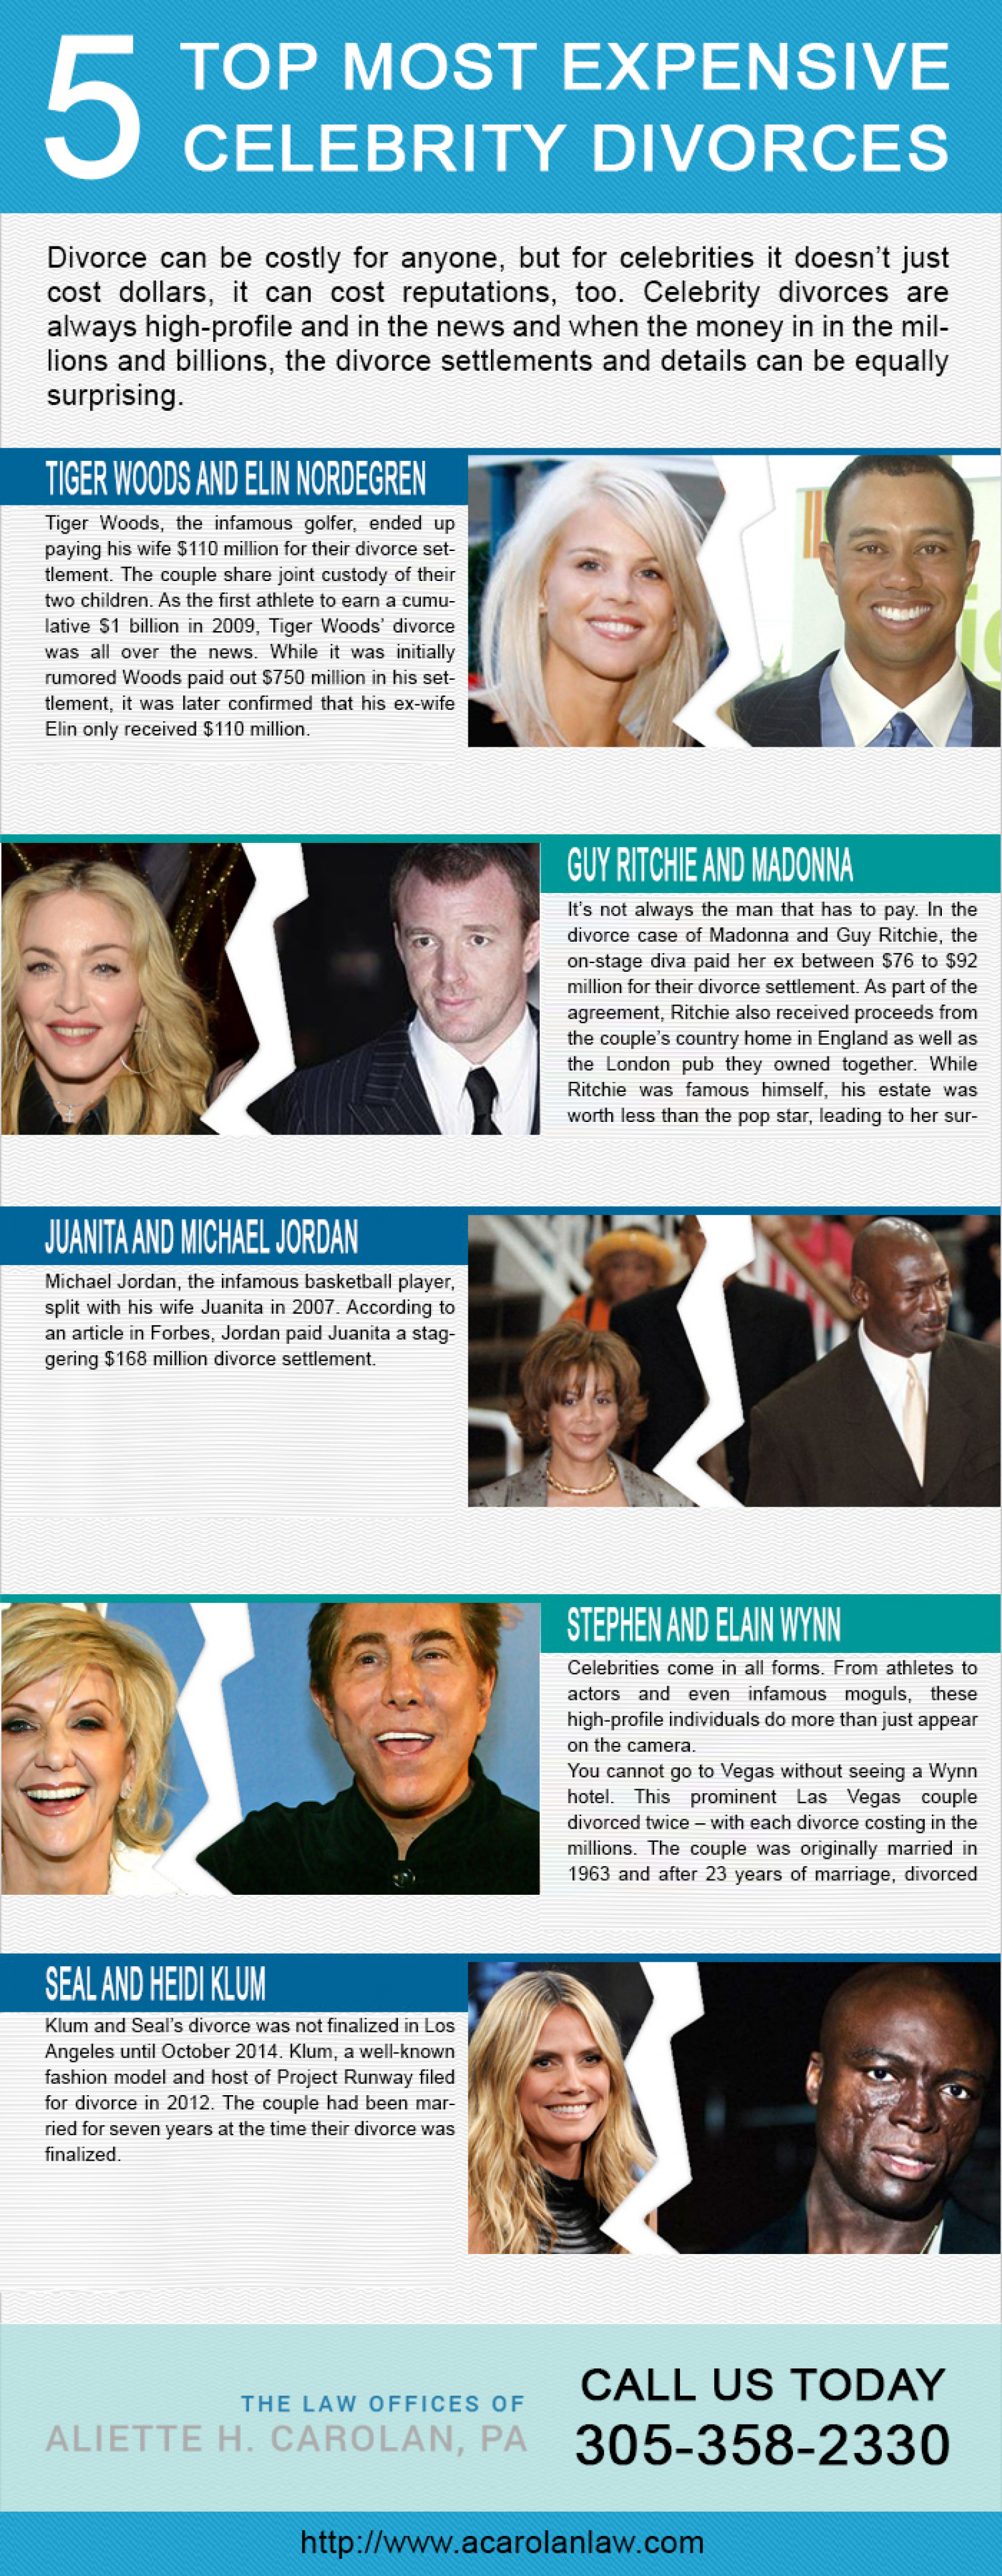 Top 10 Most Expensive Celebrity Divorces - YouTube